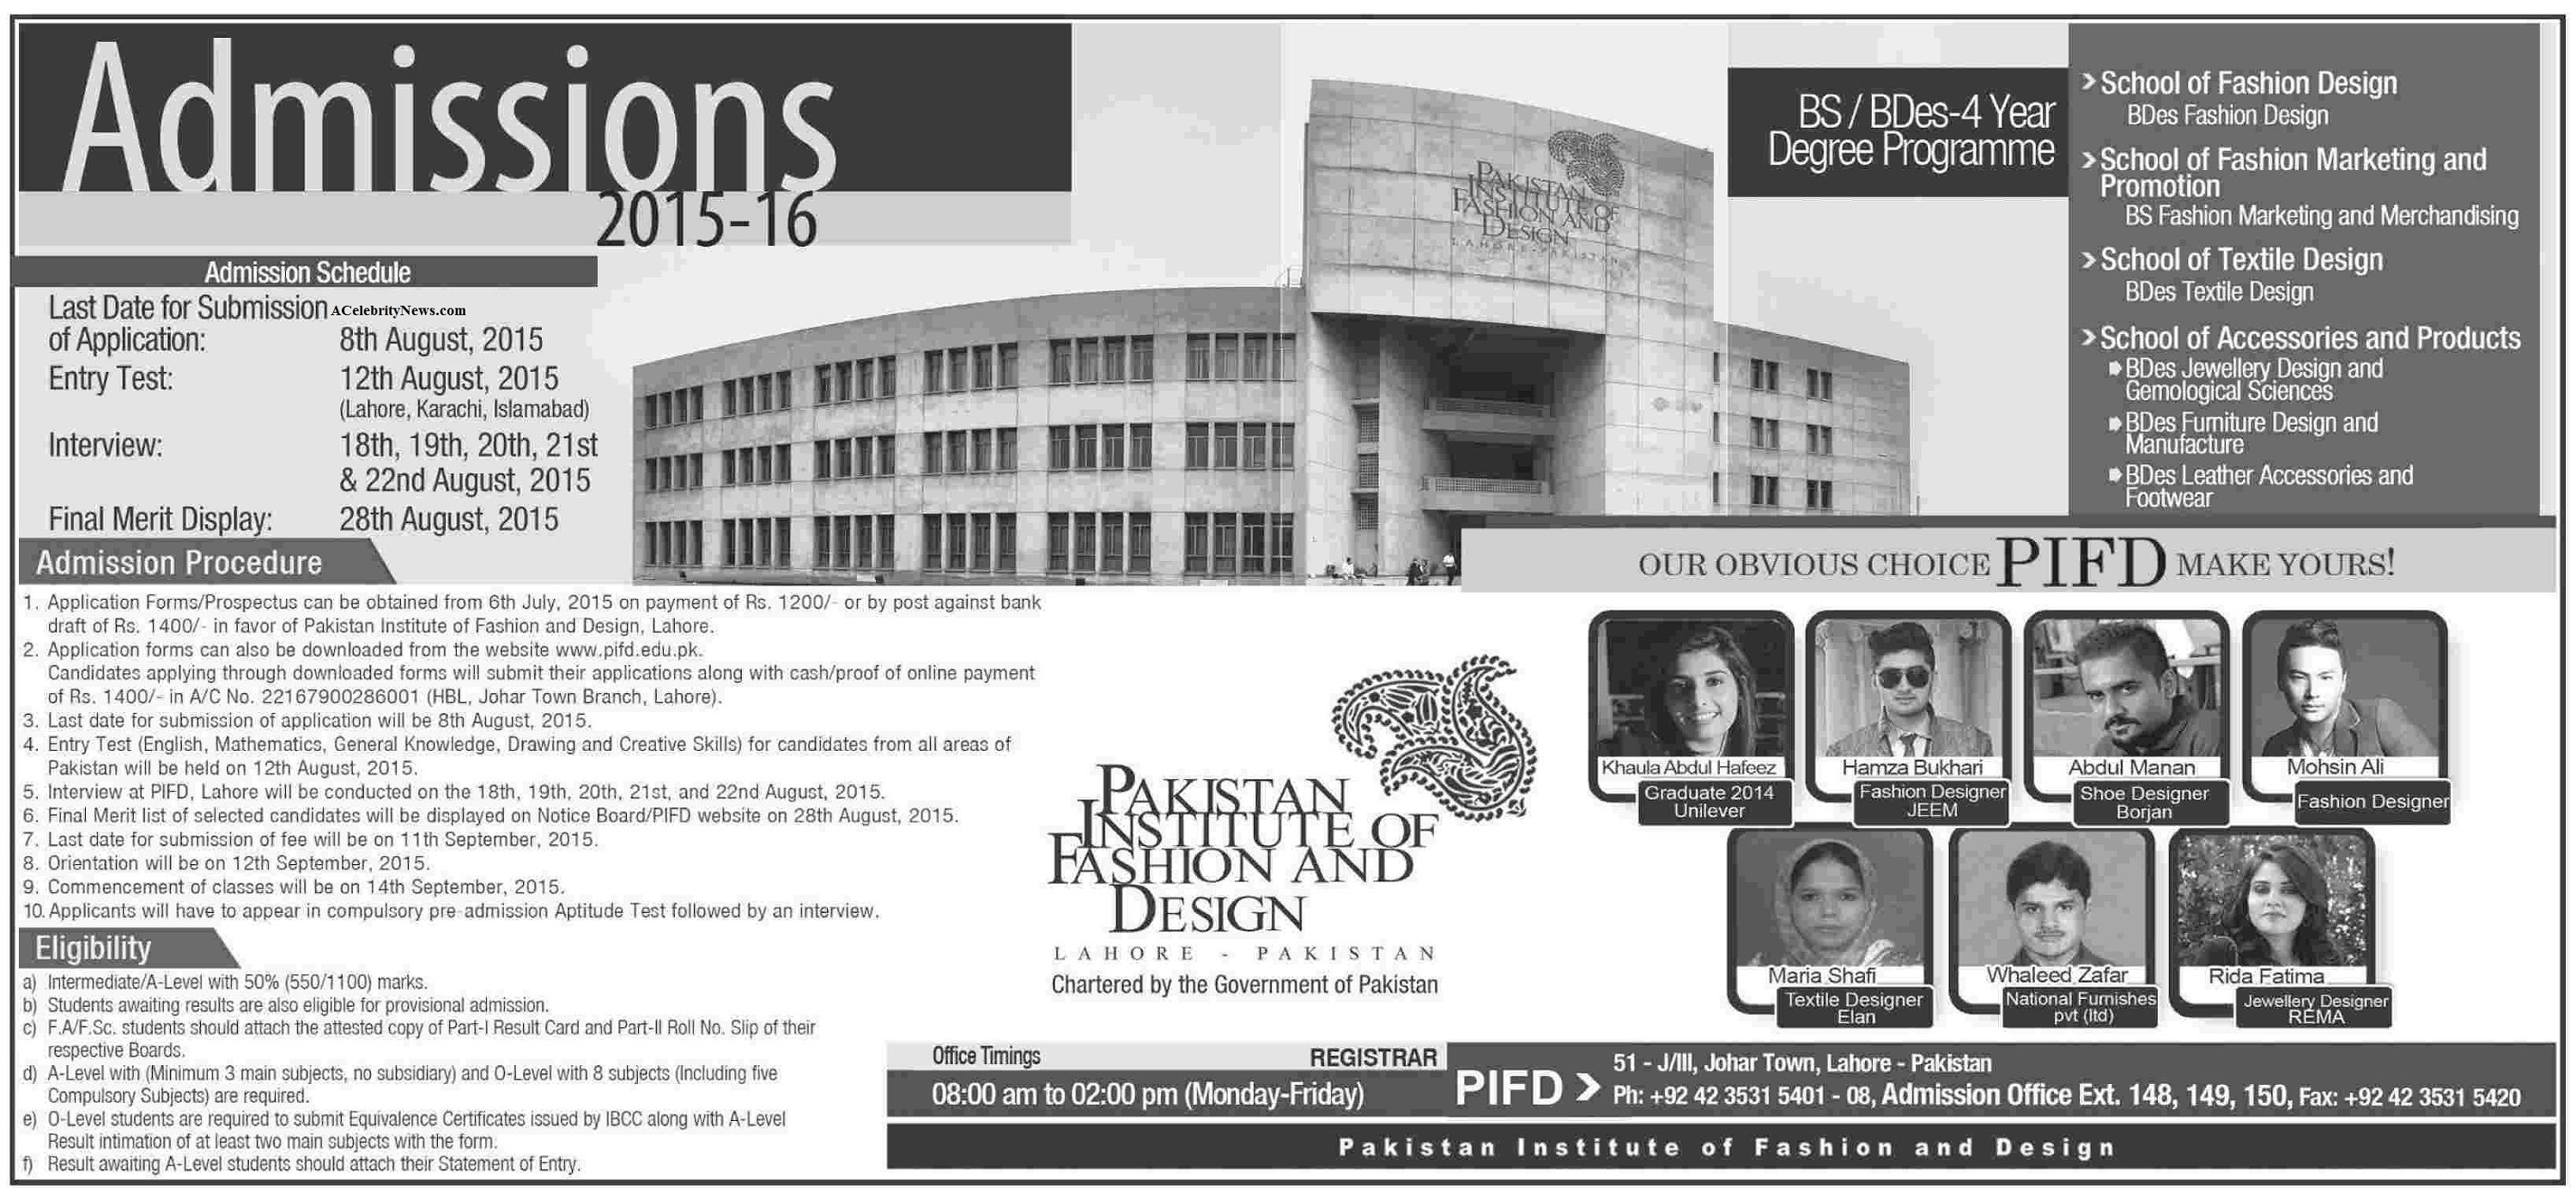 Bs Fashion Design Admission In Pakistan Institute Of Fashion And Design Lahore Acelebritynews Bs Fashion Design Admission Pa Admissions Fashion Design Design